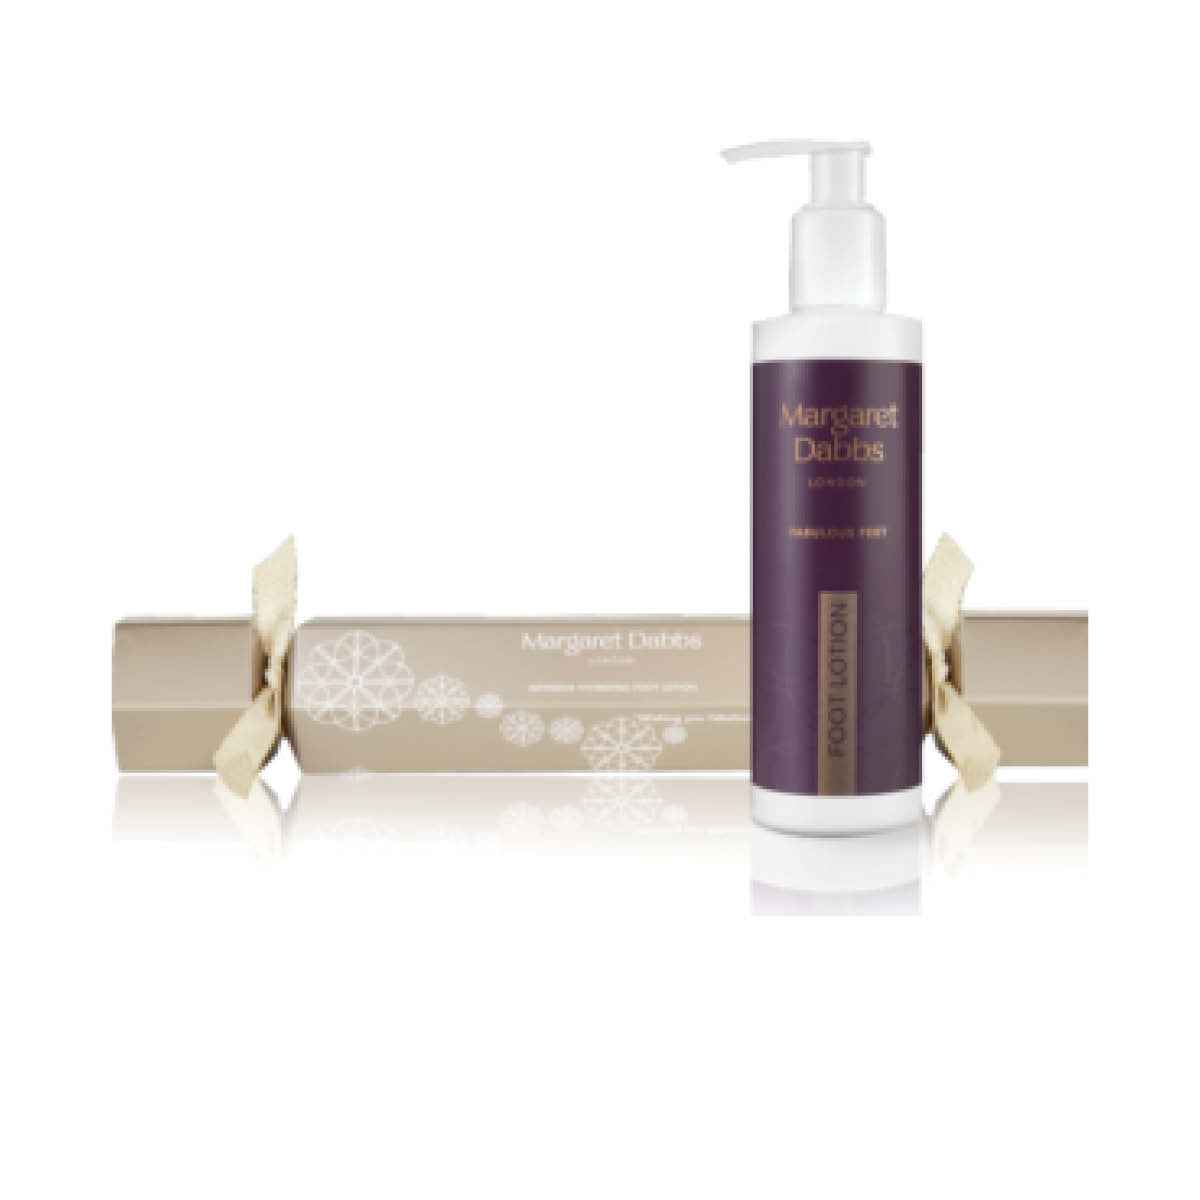 Margaret Dabbs Fabulous Christmas Cracker with Intensive Hydrating Foot Lotion